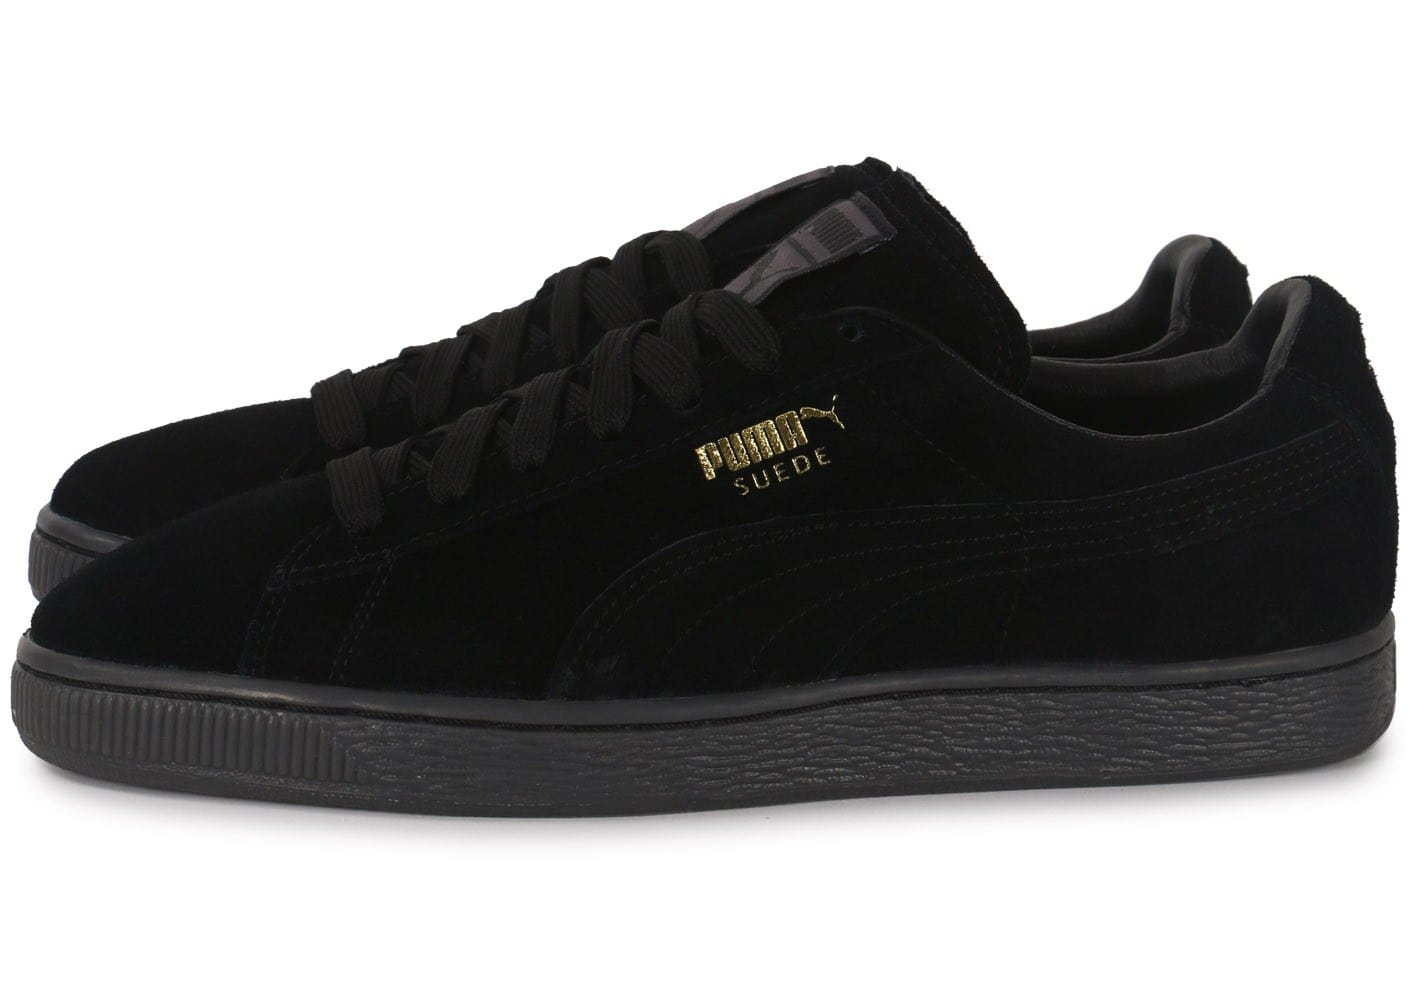 Chaussures Puma noires homme wHip5